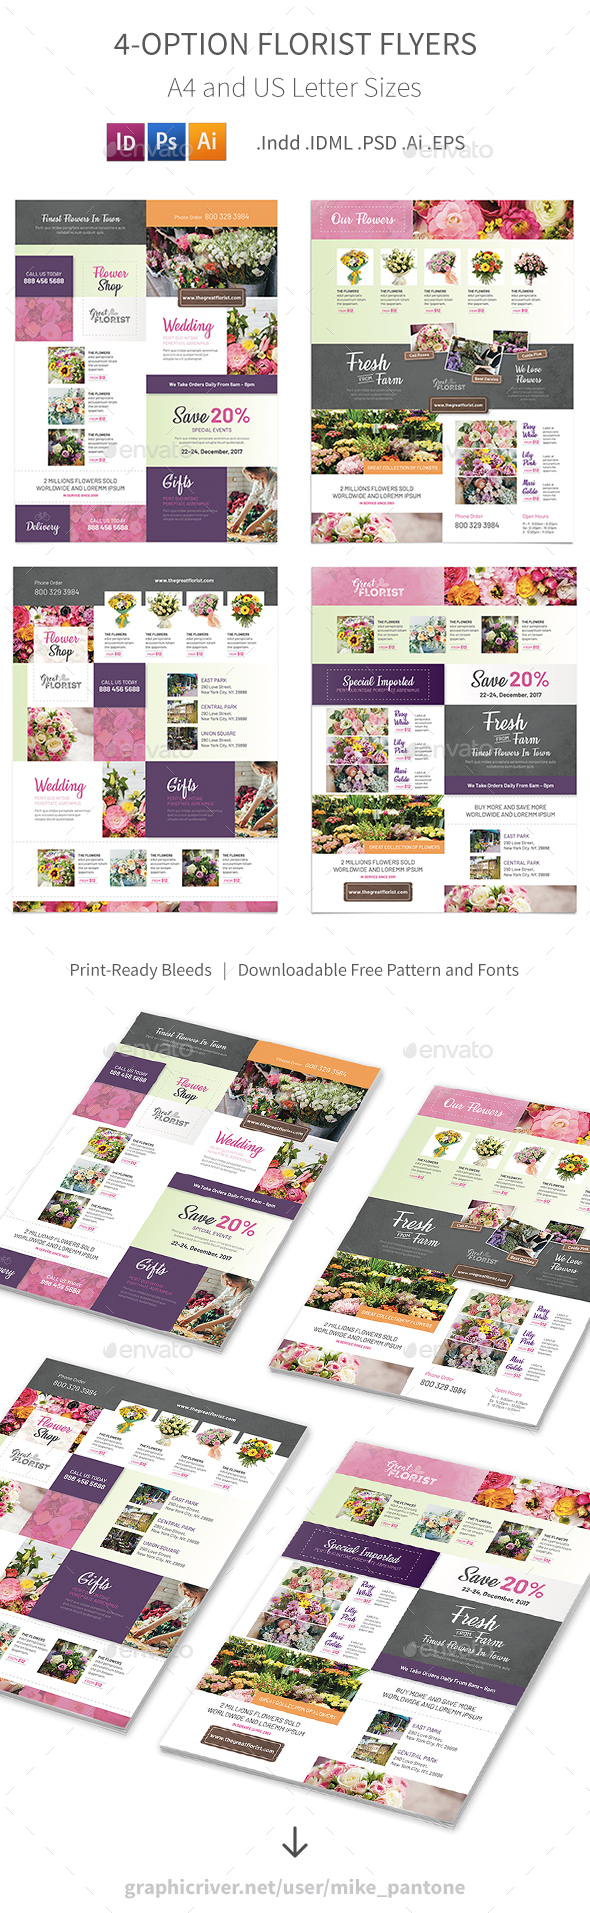 Florist Flyers 3 – 4 Options - Commerce Flyers